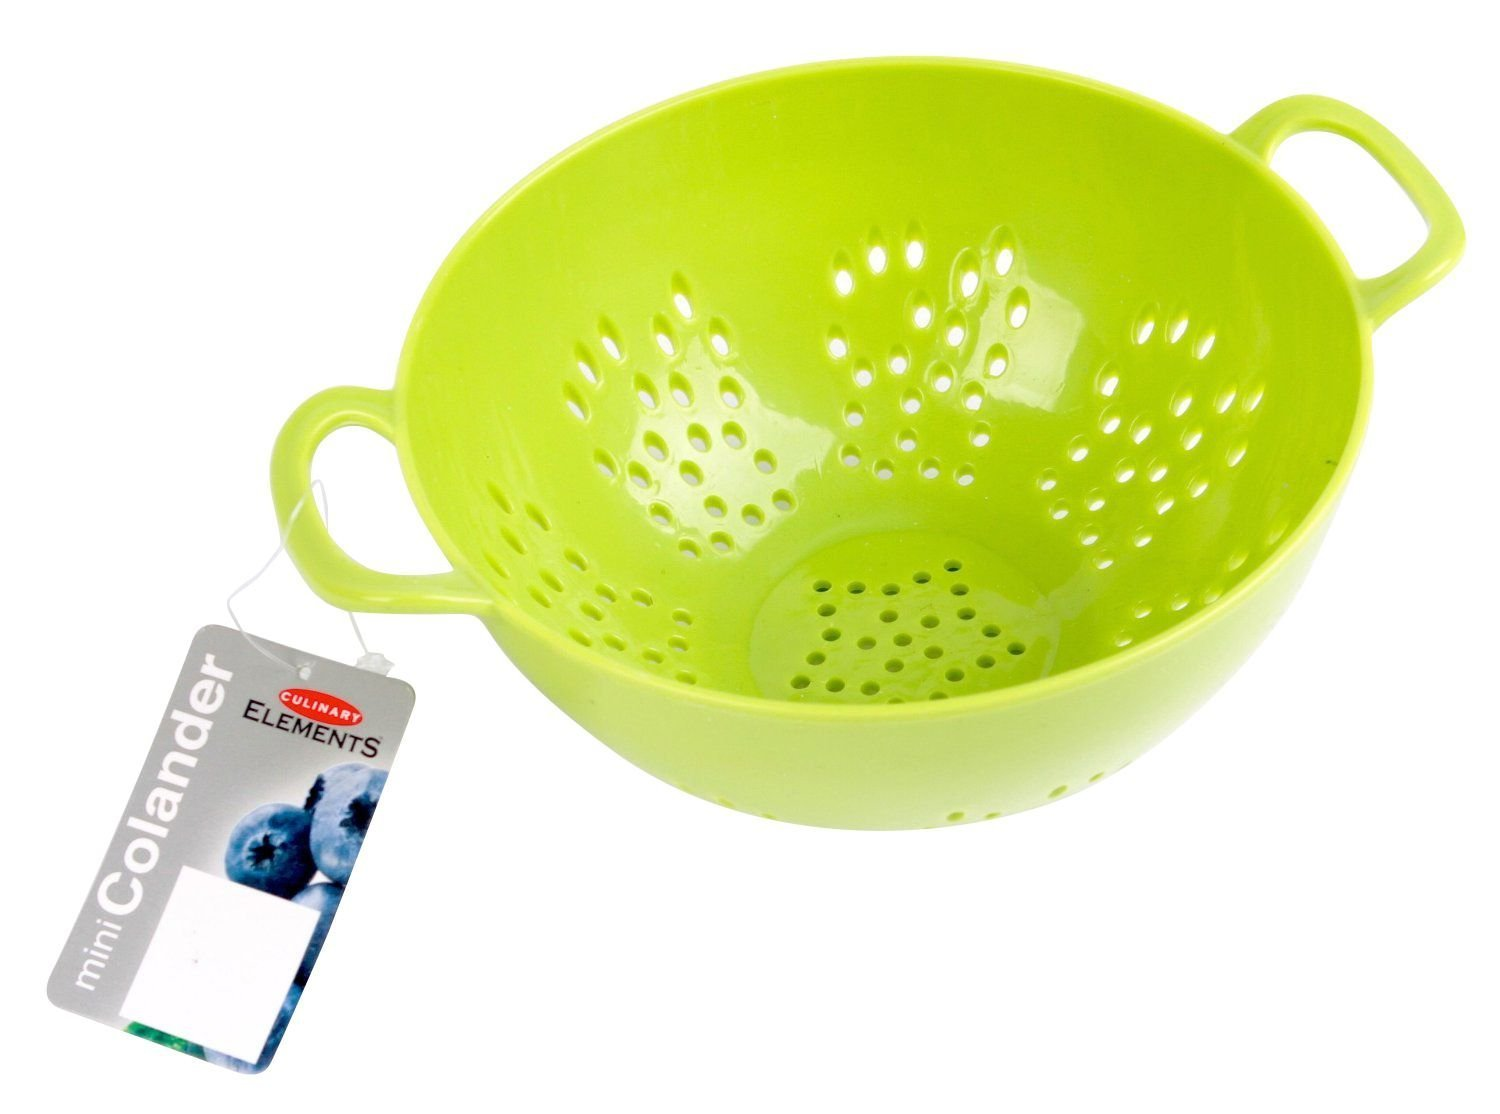 Culinary Elements 6-inch Mini Colander with Double Handles and Deep Bowl, Green, 1-pack COMINHKPR18980